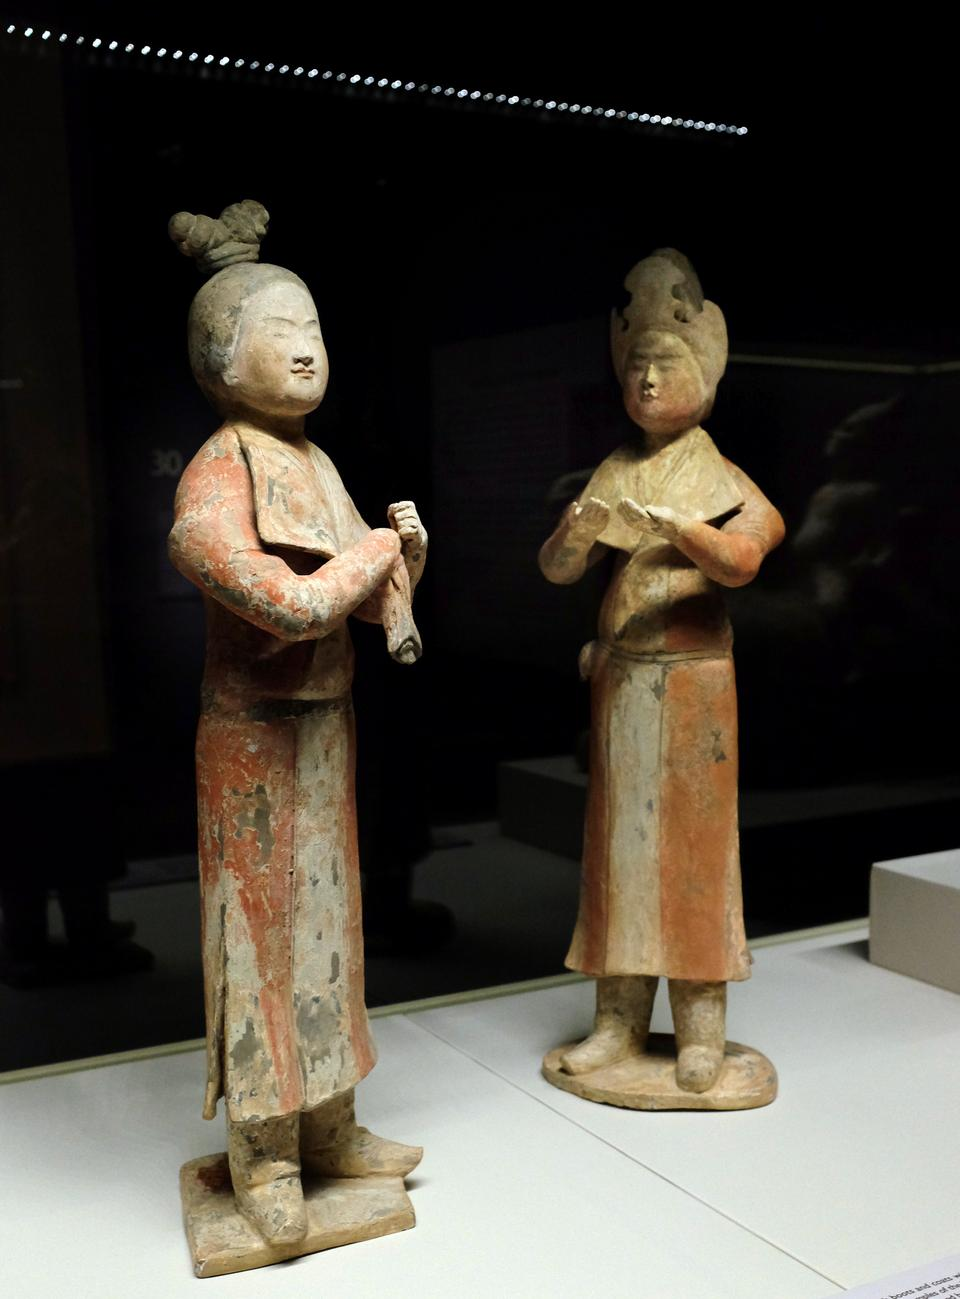 Two female figures in Central Asian dress